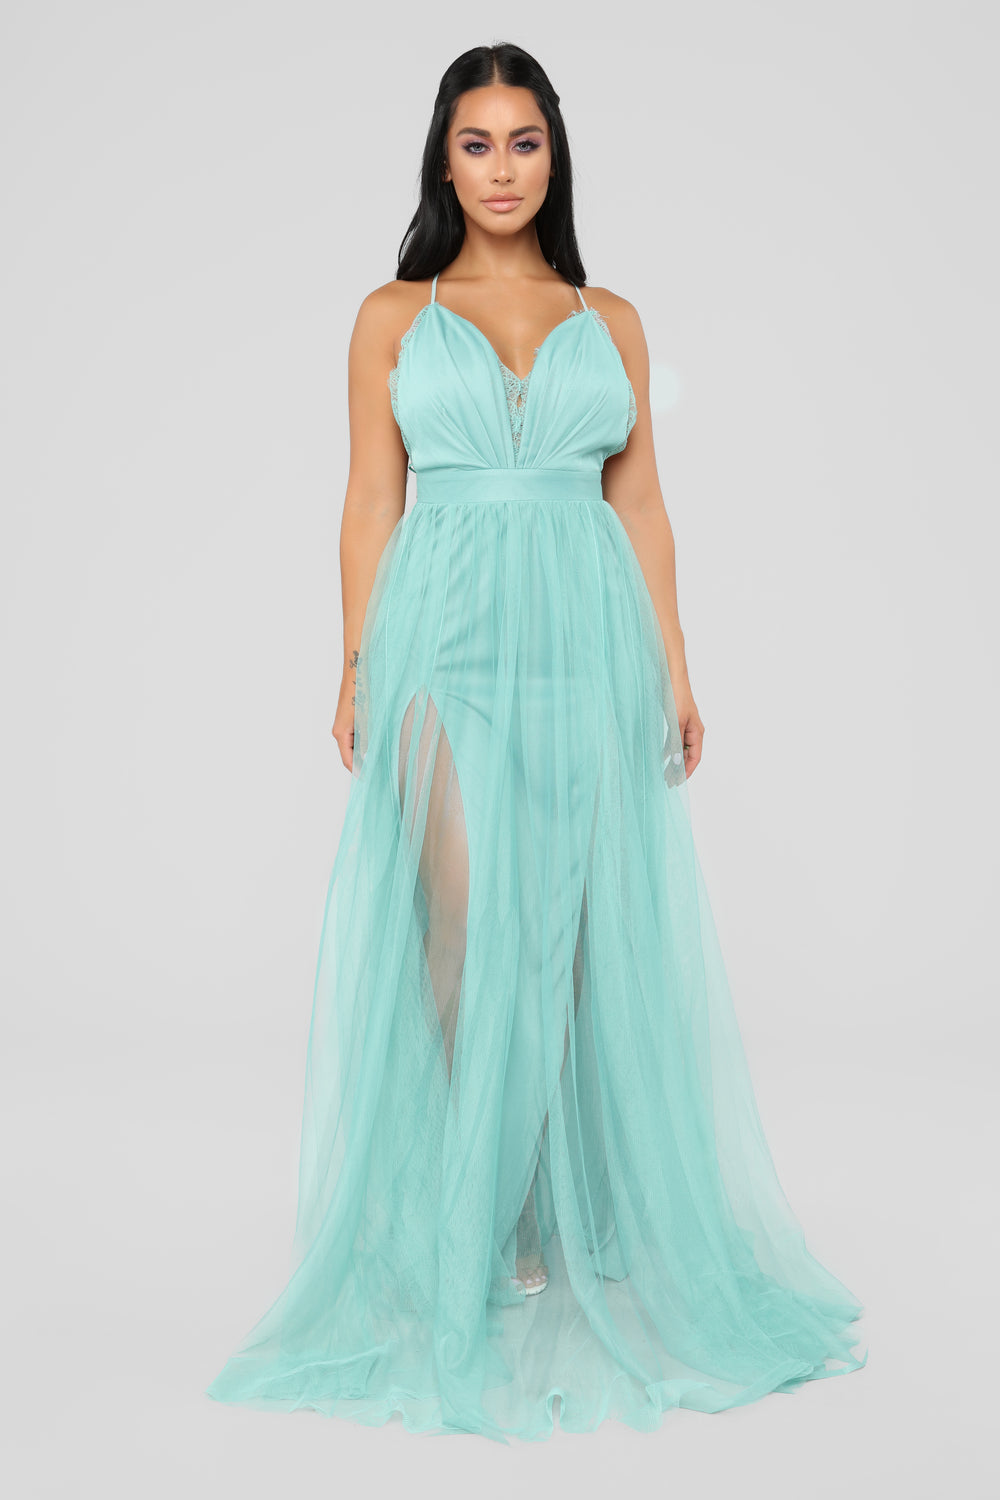 Work The Runway Maxi Dress - Mint